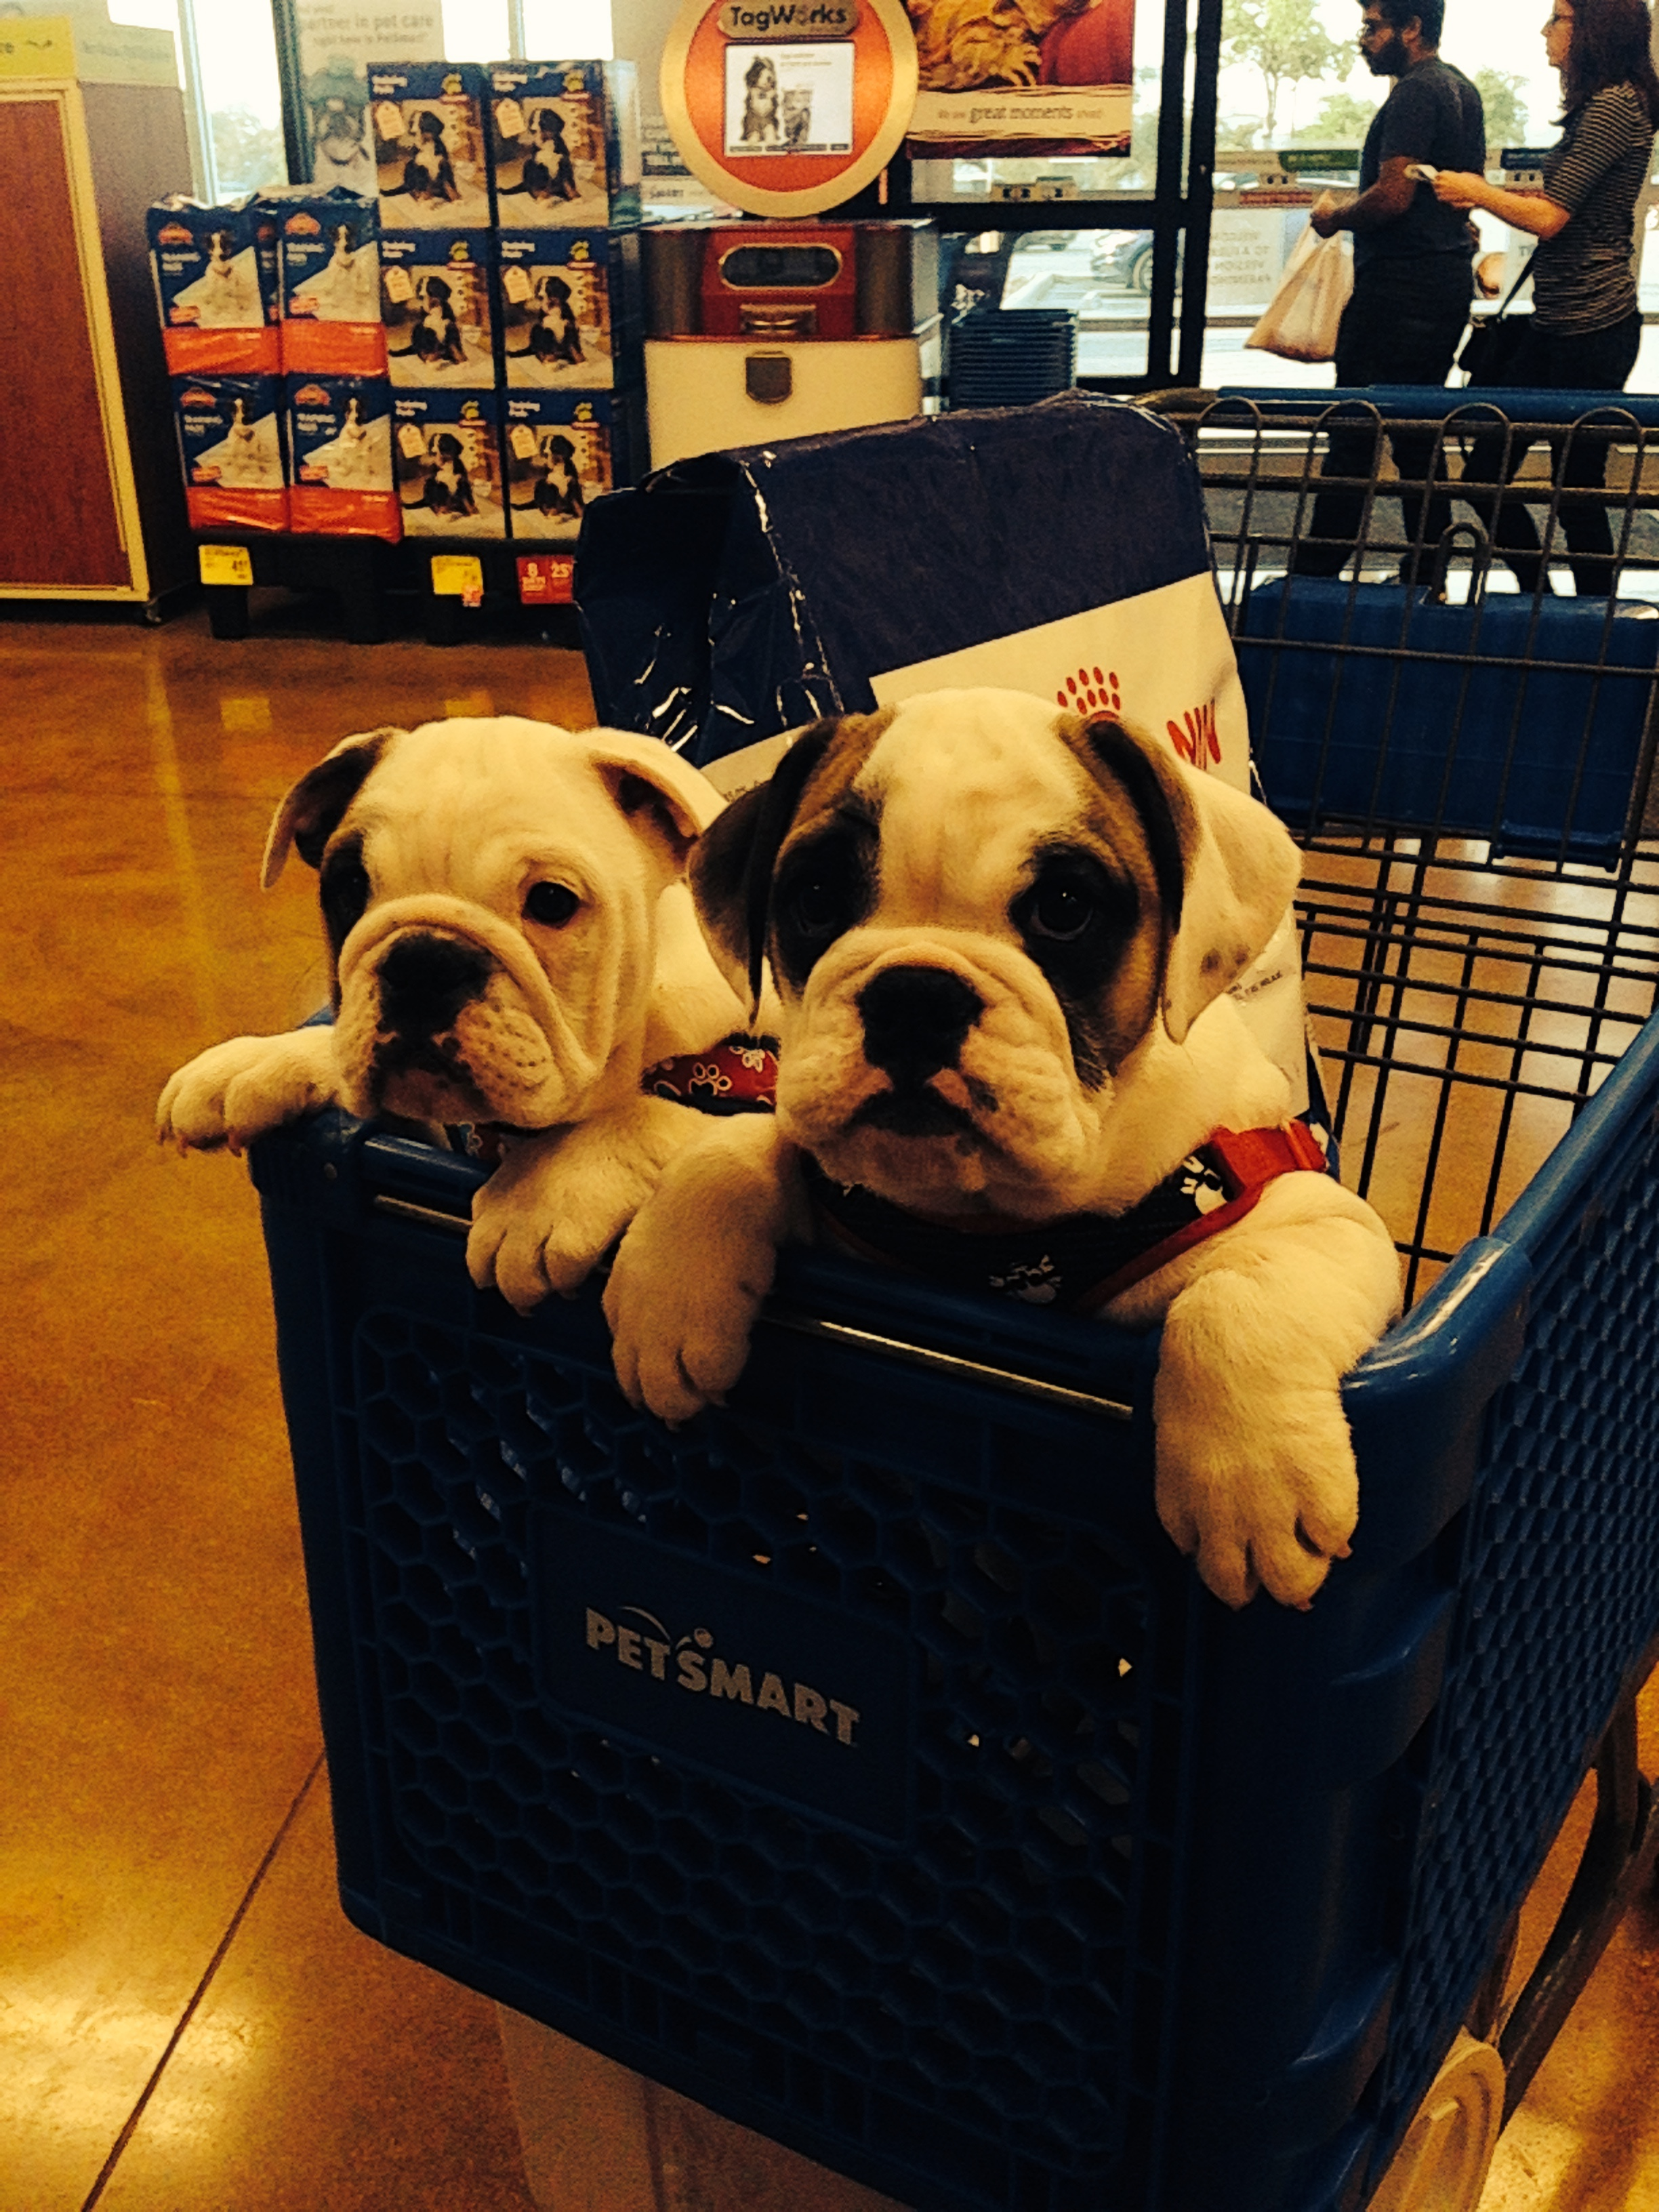 Shopping at Petsmart